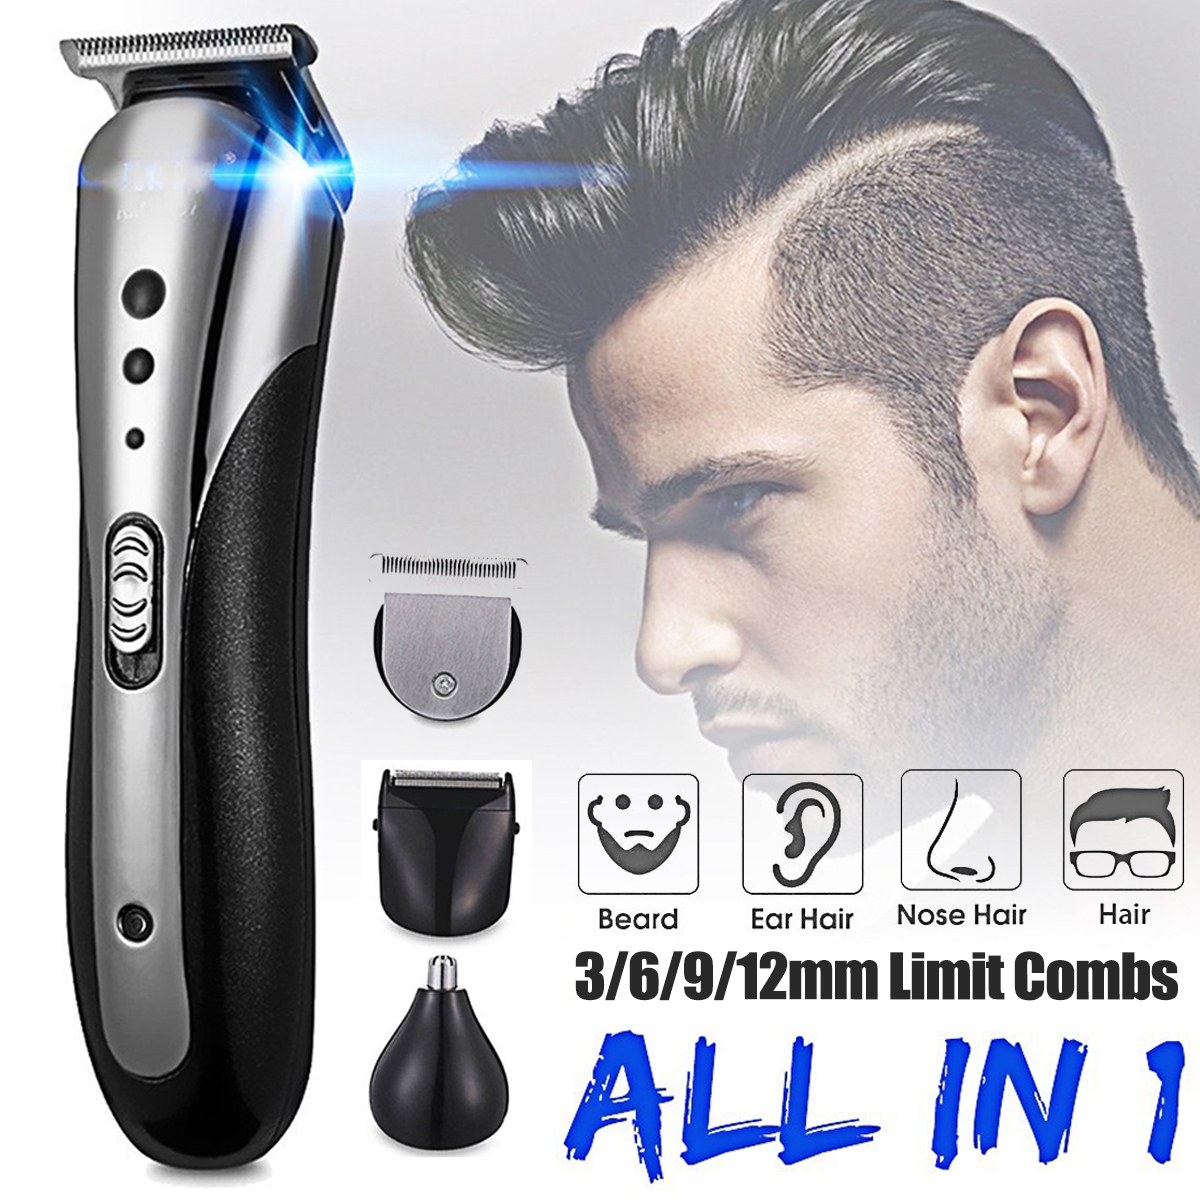 KEMEI All in1 Rechargeable Hair Clipper for Men Waterproof Wireless Electric Shaver Beard Nose Ear Shaver Hair Trimmer Tool